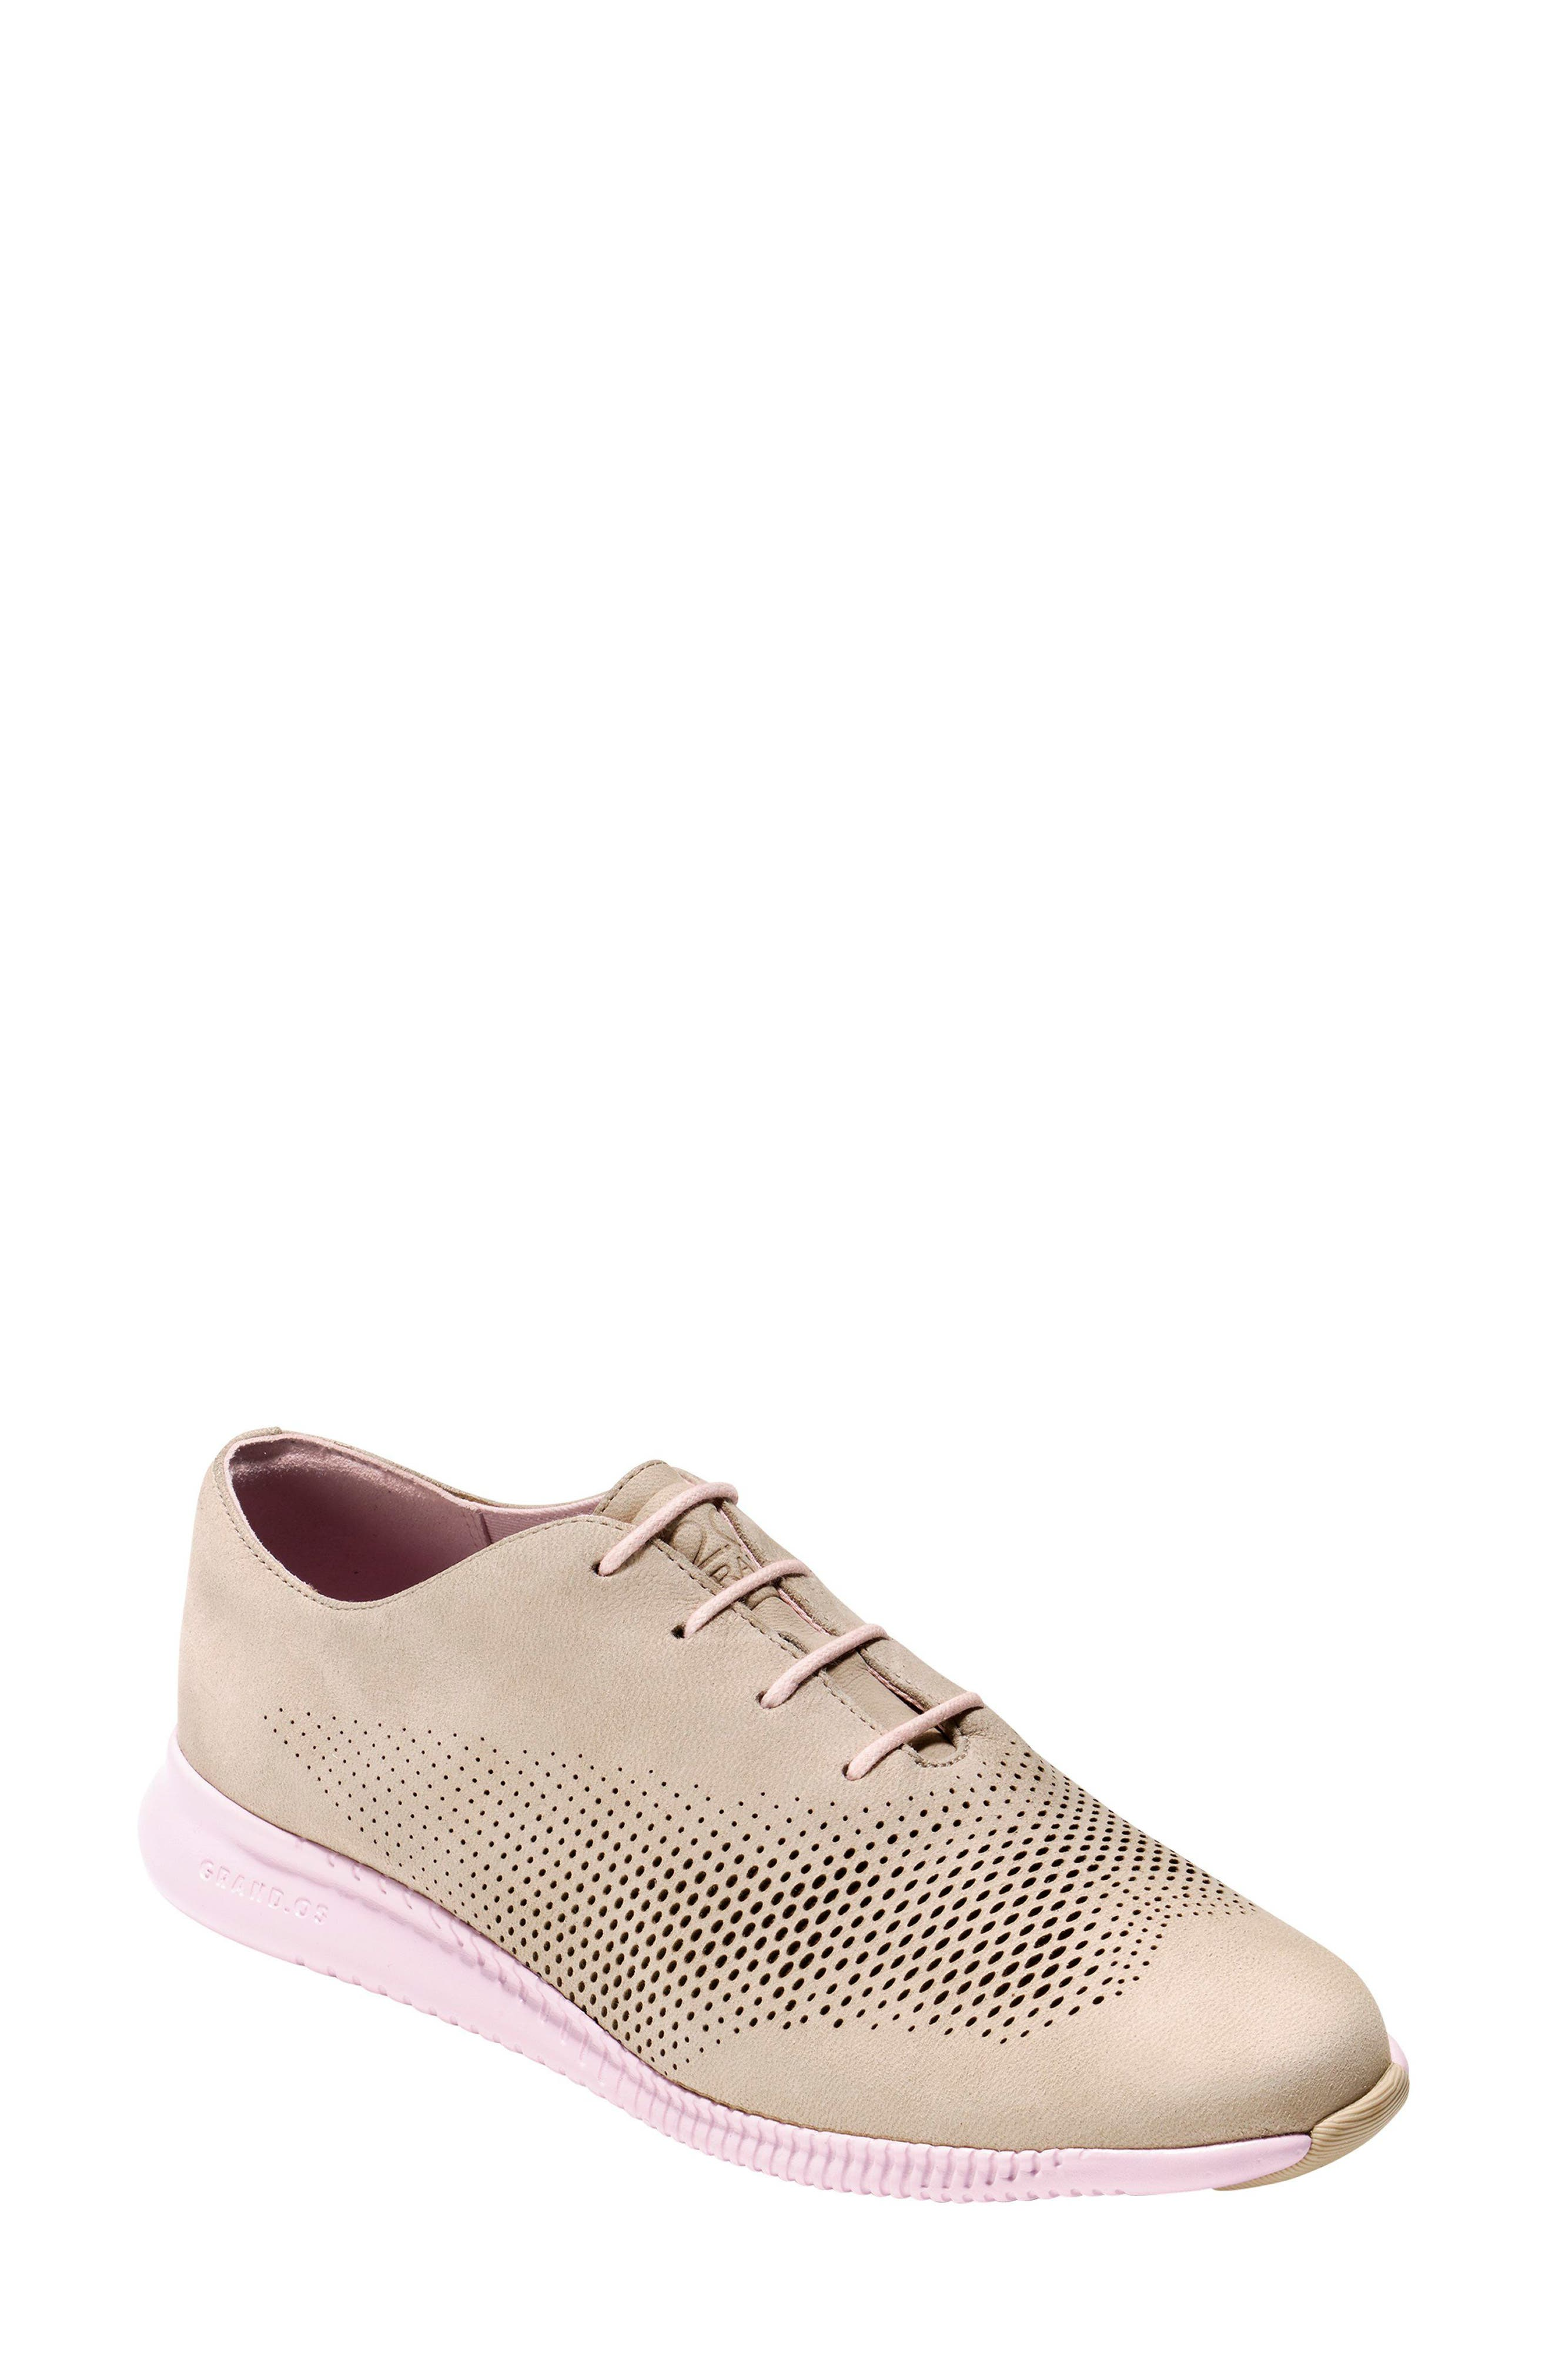 'ZeroGrand' Perforated Wingtip,                         Main,                         color, Barley/ Pale Lilac Nubuck